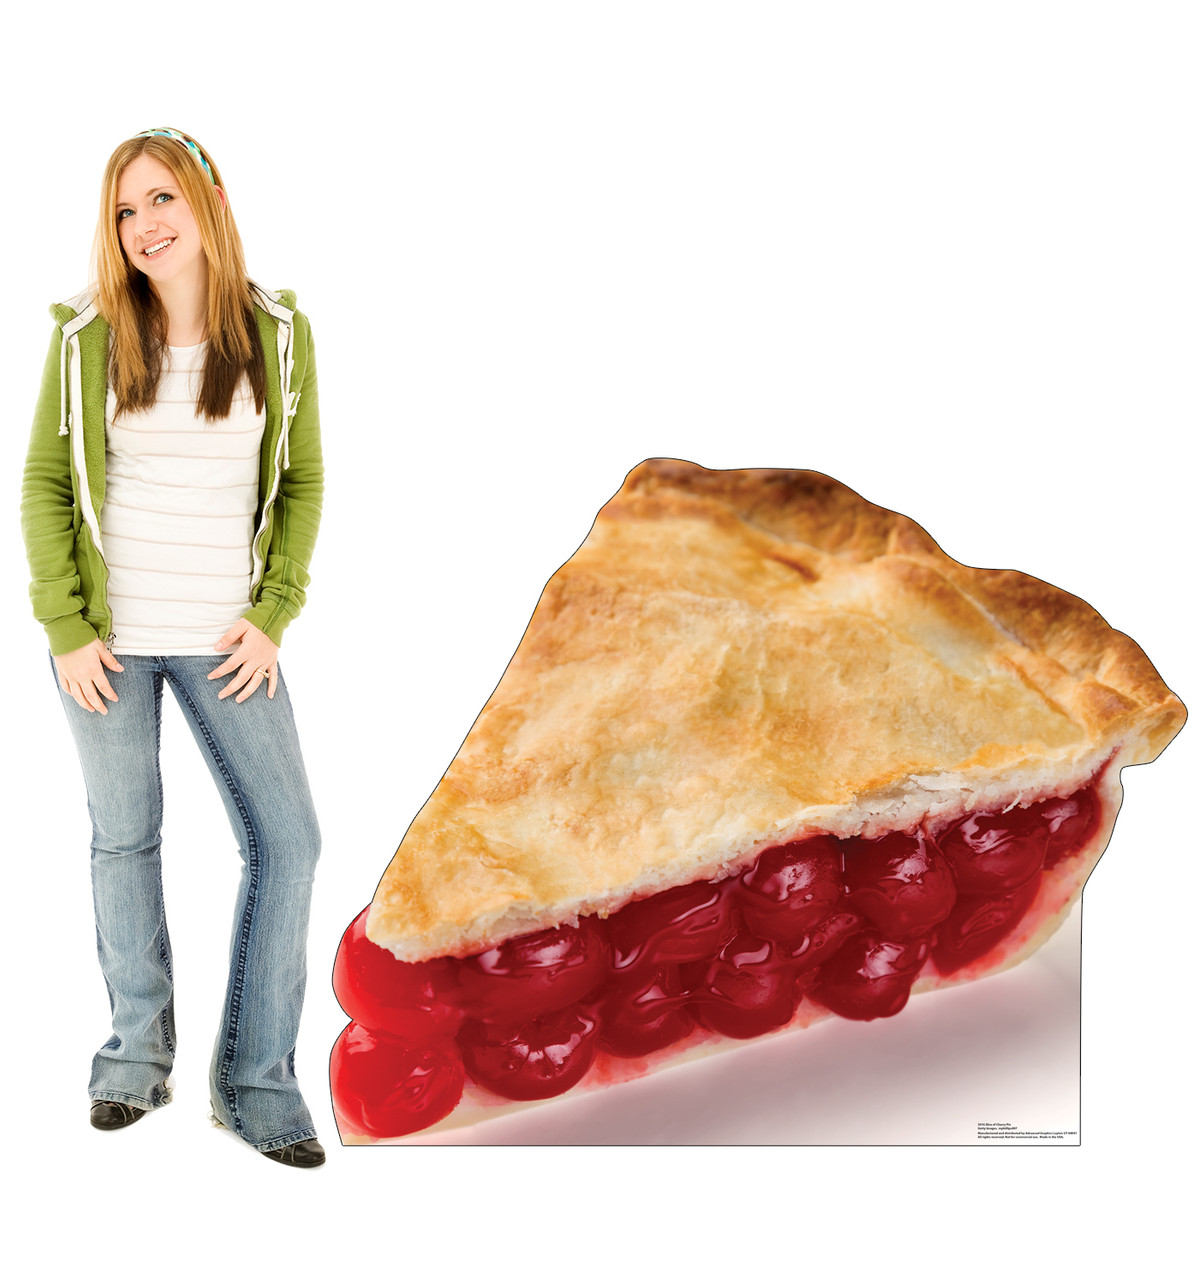 Life-size cardboard standee of a Slice of Cherry Pie Lifesize